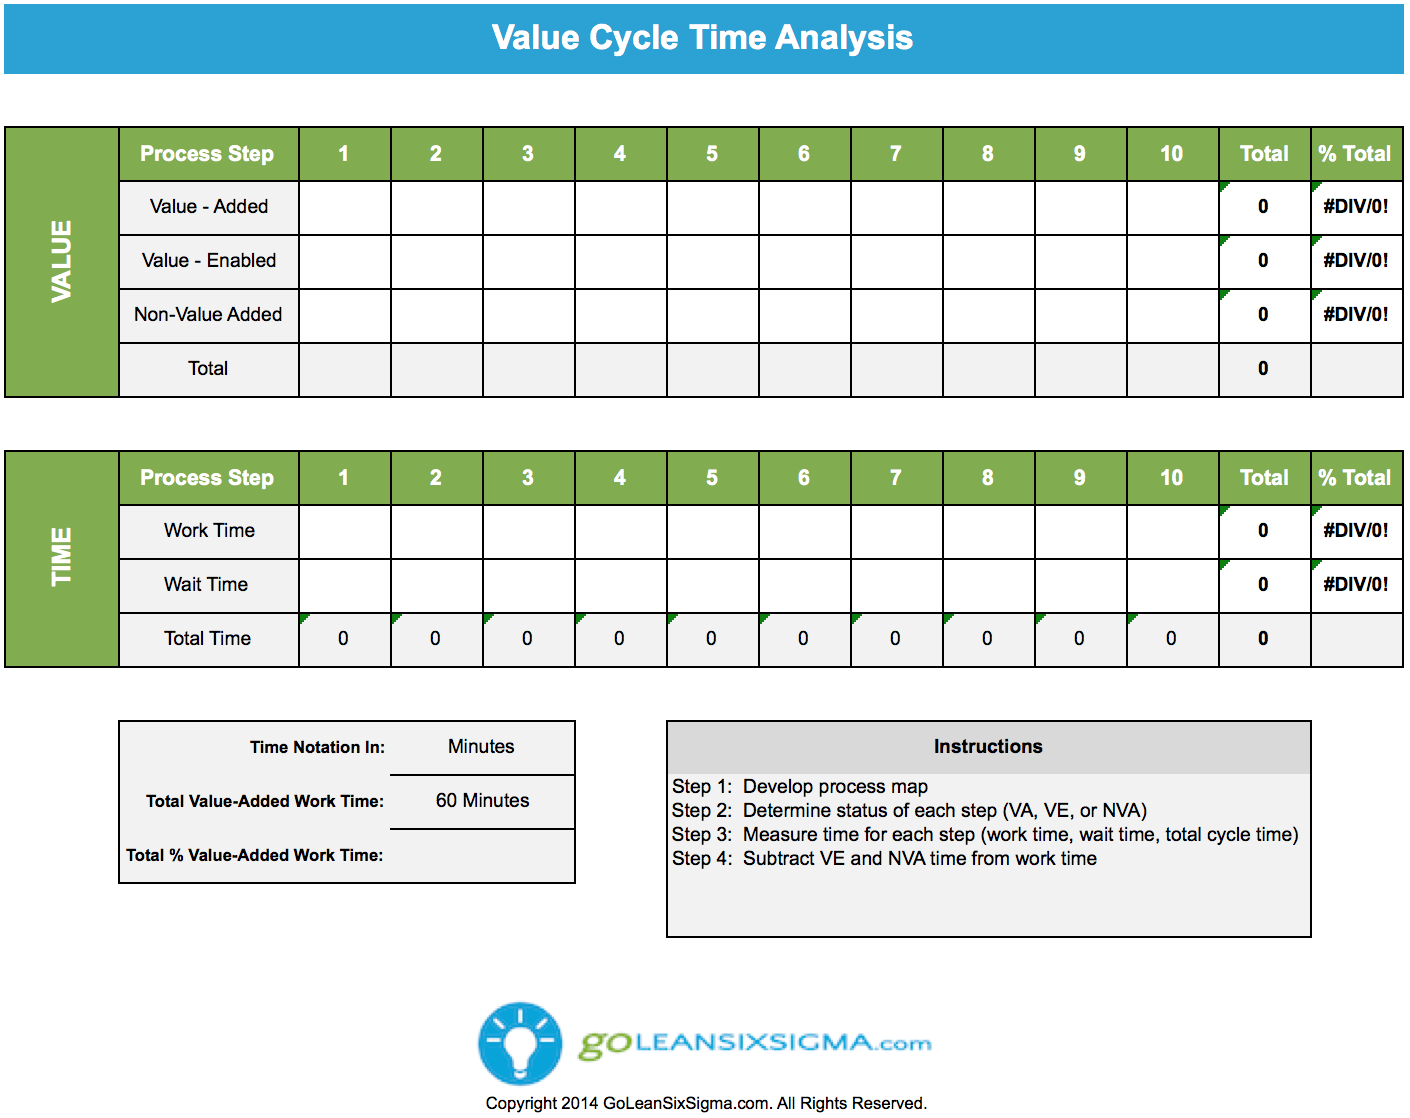 Value Cycle Time Analysis – GoLeanSixSigma.com